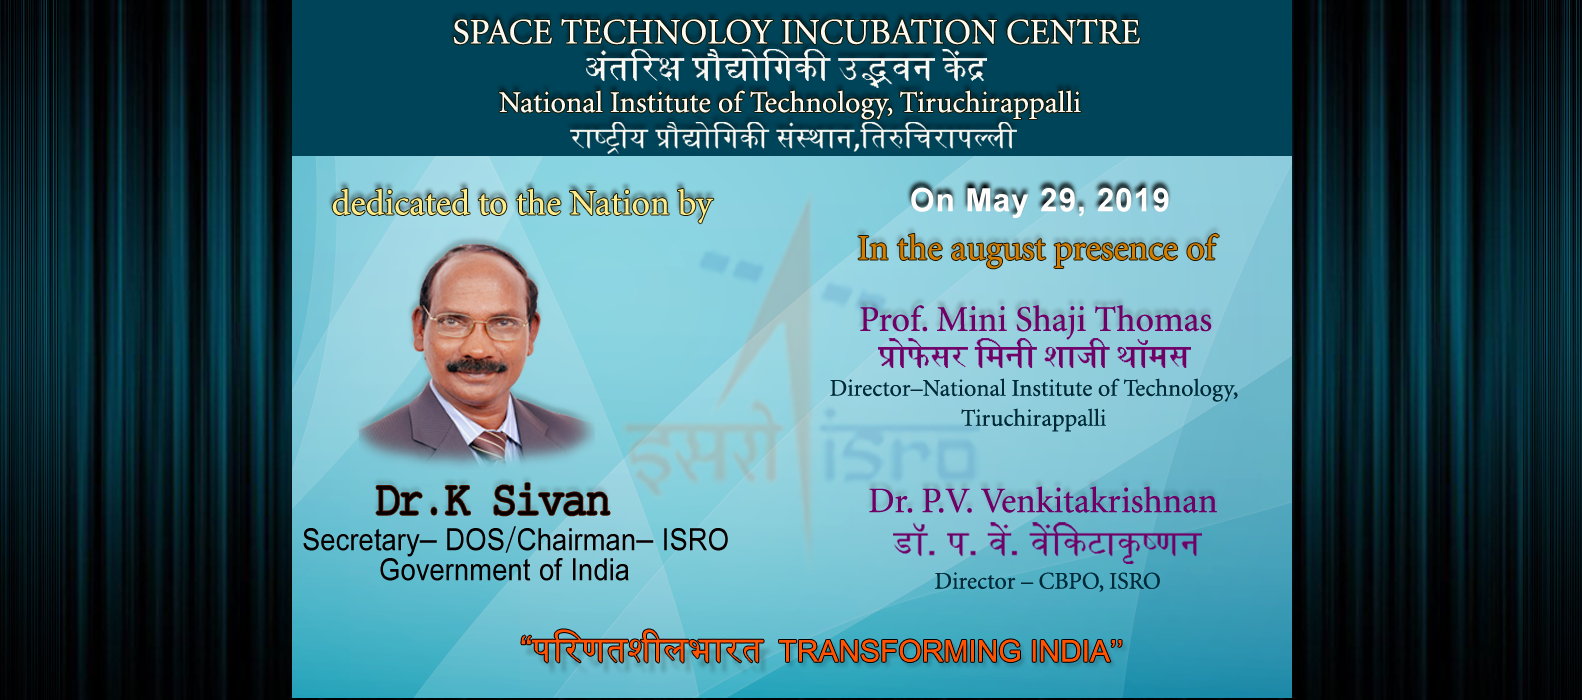 Dr. K. Sivan, Chairman – ISRO / Secretary – DOS inaugurated the S-TIC at NIT- Tiruchirappalli remotely from Bangalore